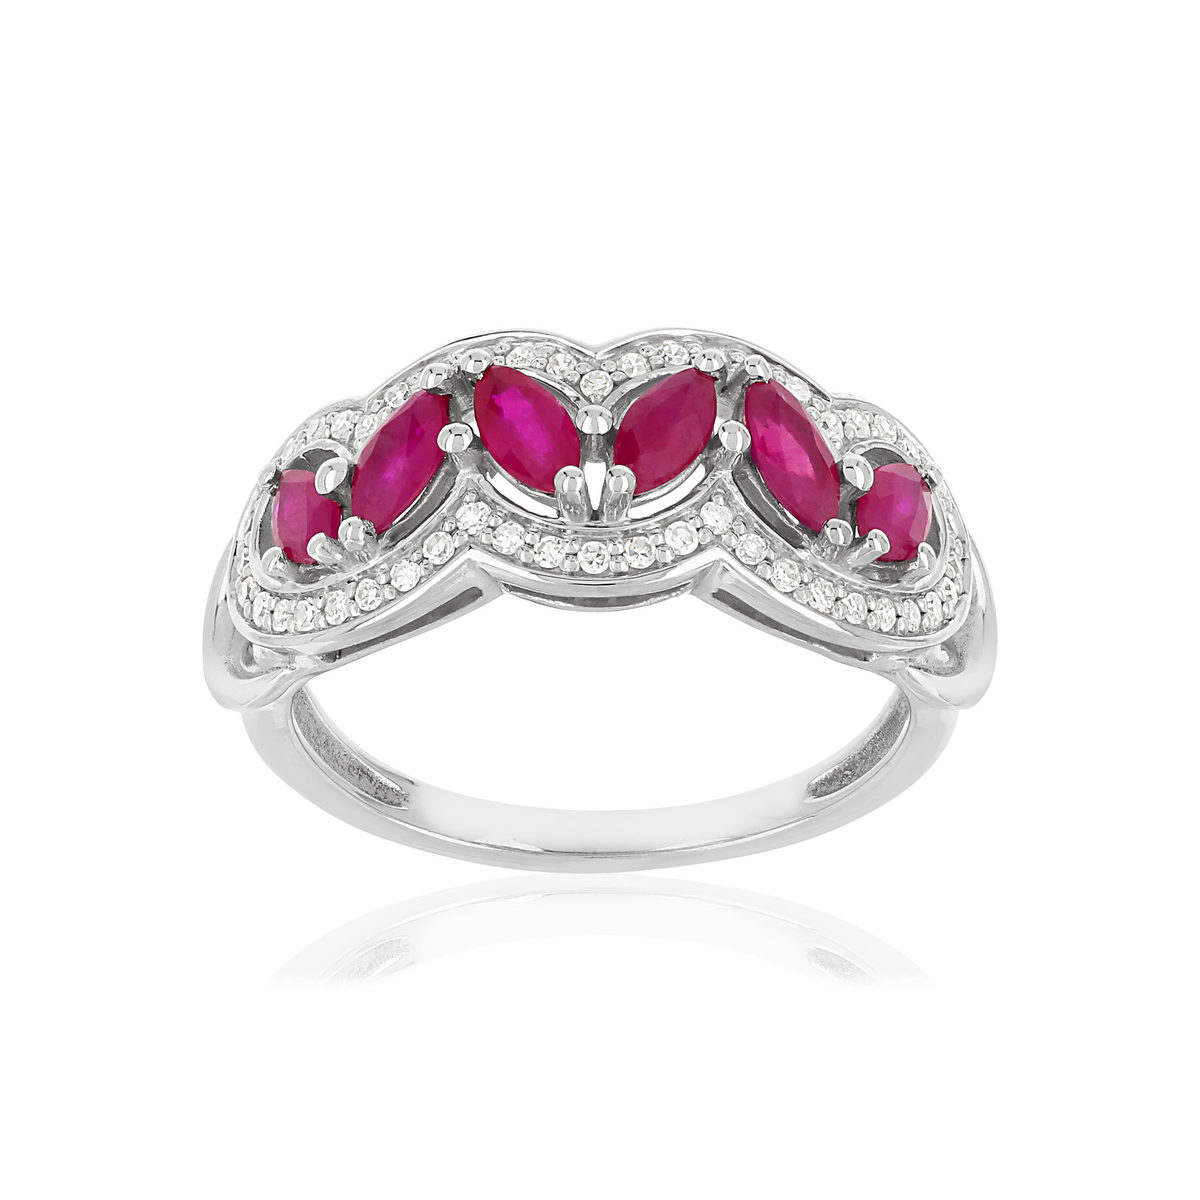 Bague MATY Or 750 blanc Rubis et Diamants - vue V1